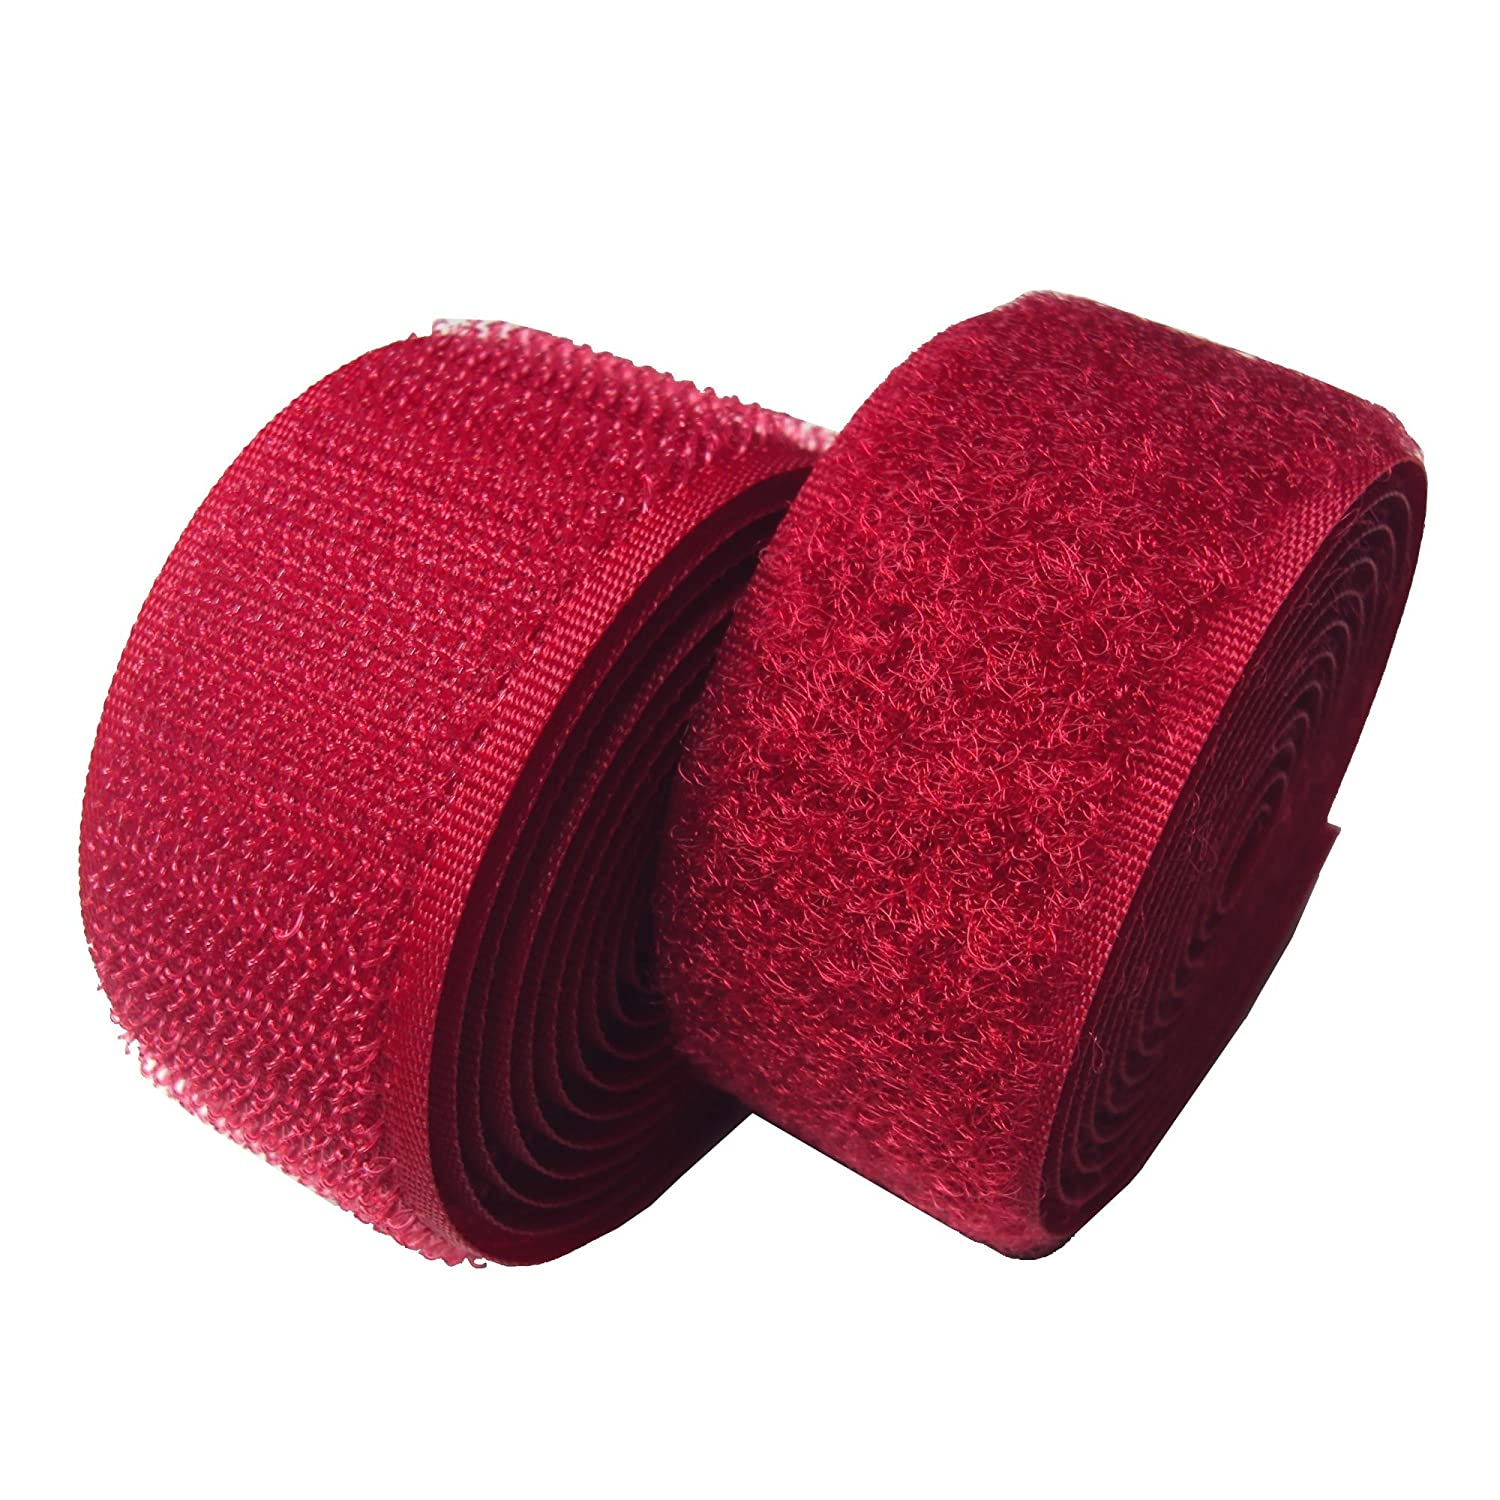 Lovetex 2 (50mm) Red Sew on Hook and Loop Fastener Tape 5 Pair Yards